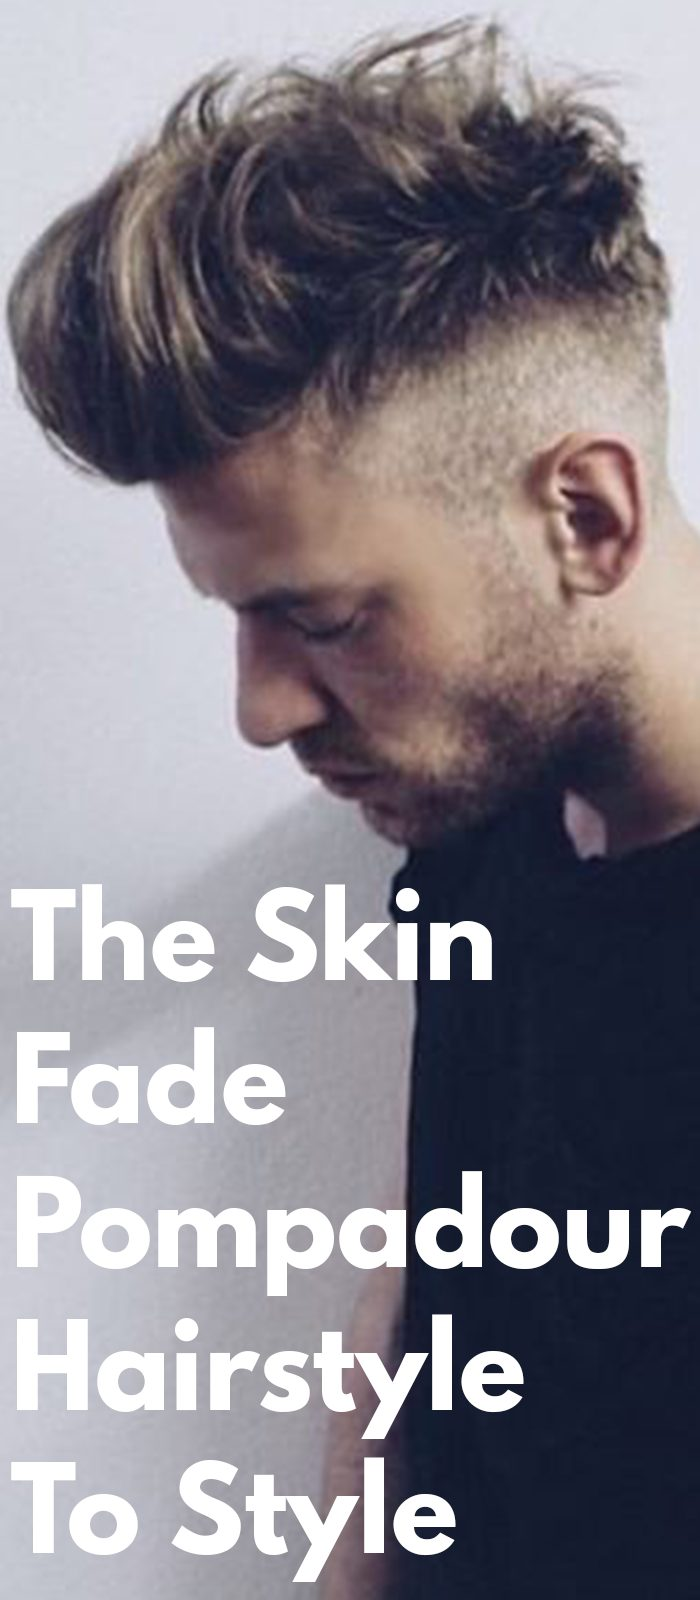 The Skin Fade Pompadour Hairstyle To Style